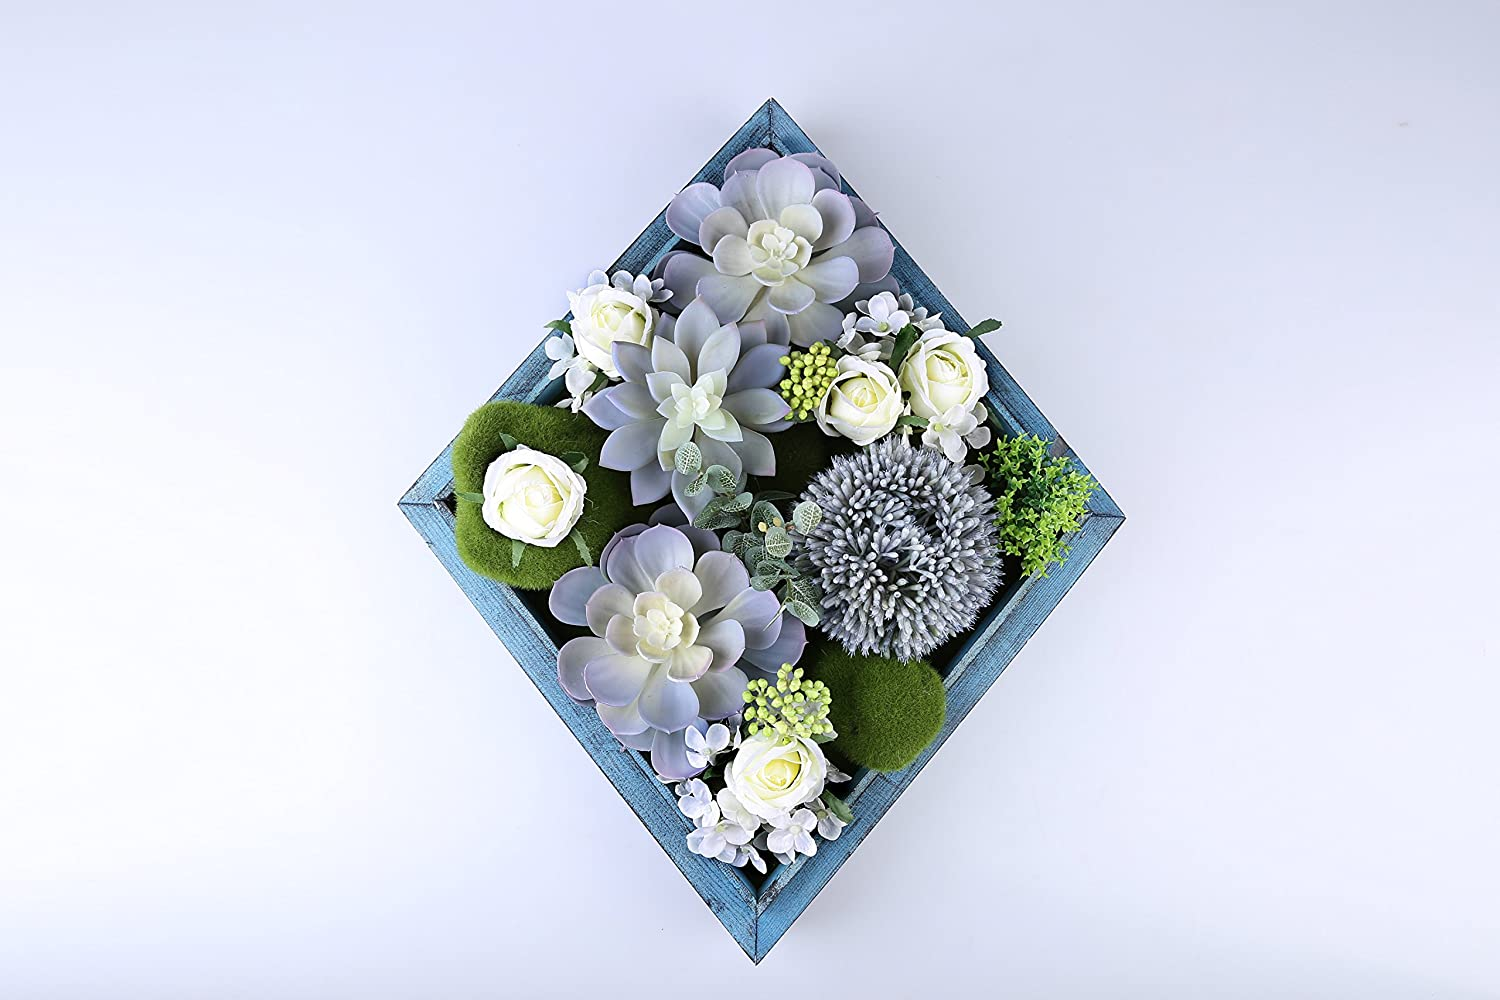 Jintano 3D Artificial Flowers Wall Hanger Succulent Plants Moss with Blue Frame Home Decor